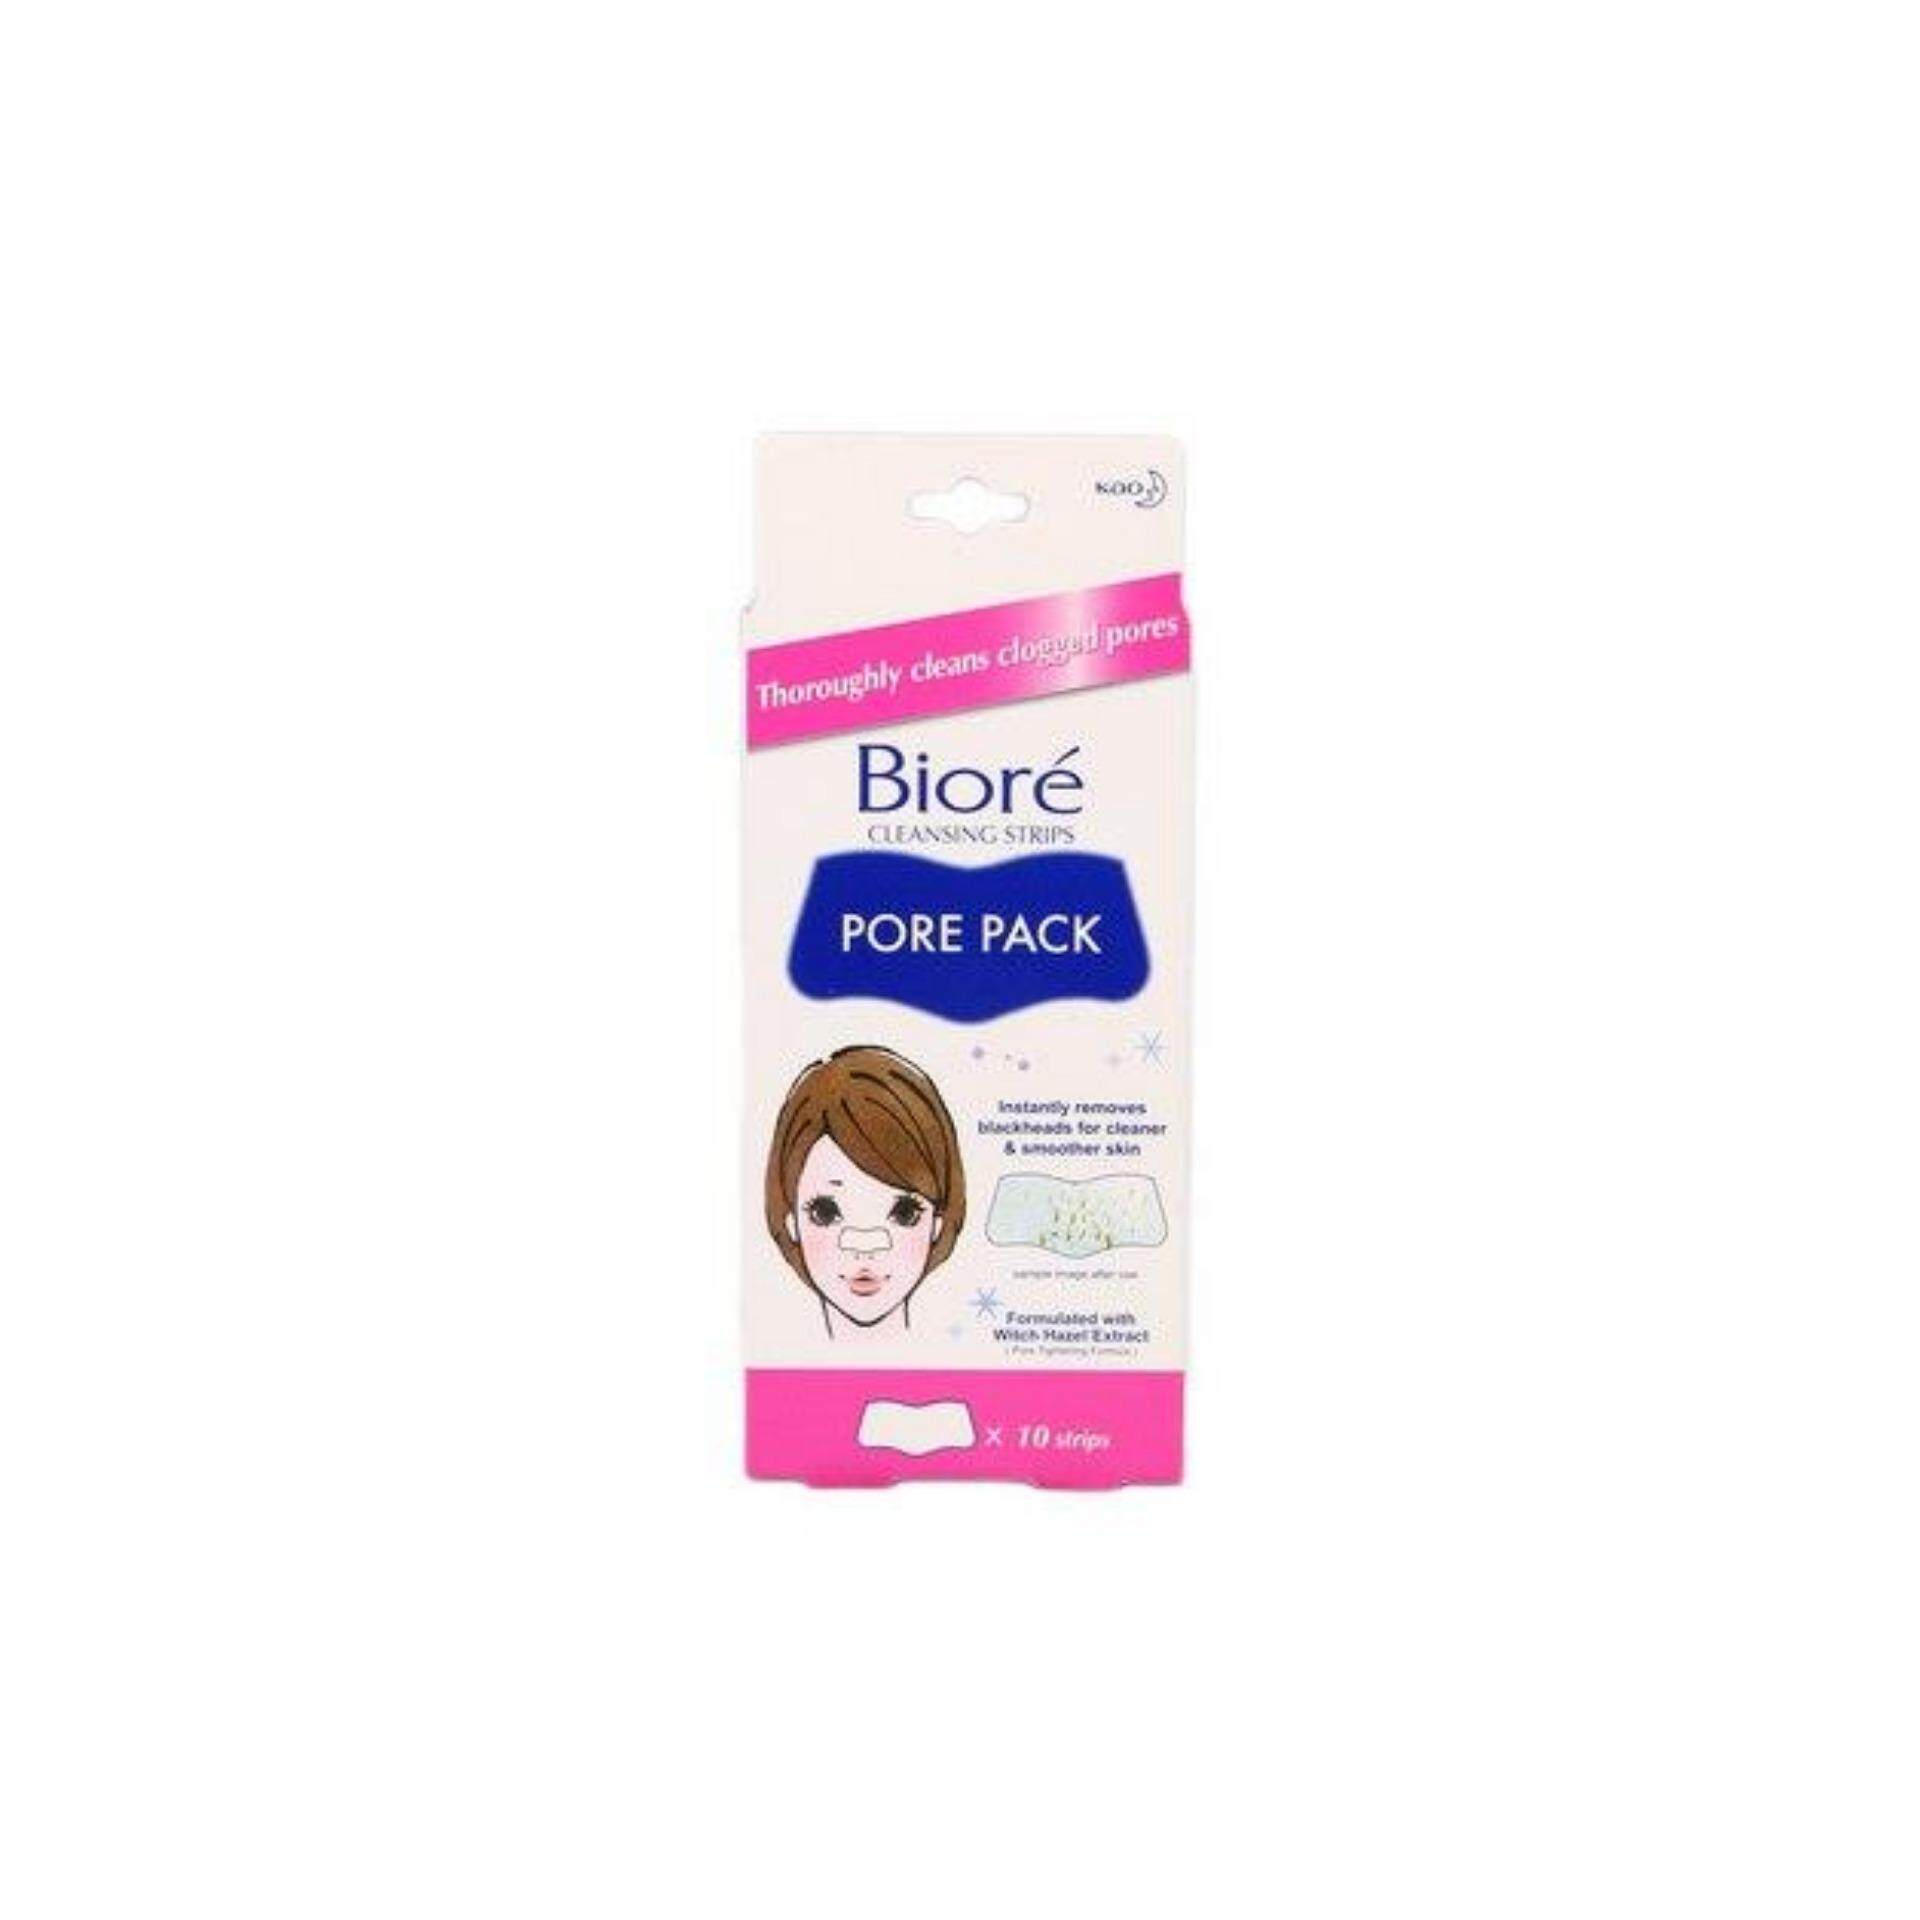 Biore Pore Pack 10s (Remove Nose Blackheads)